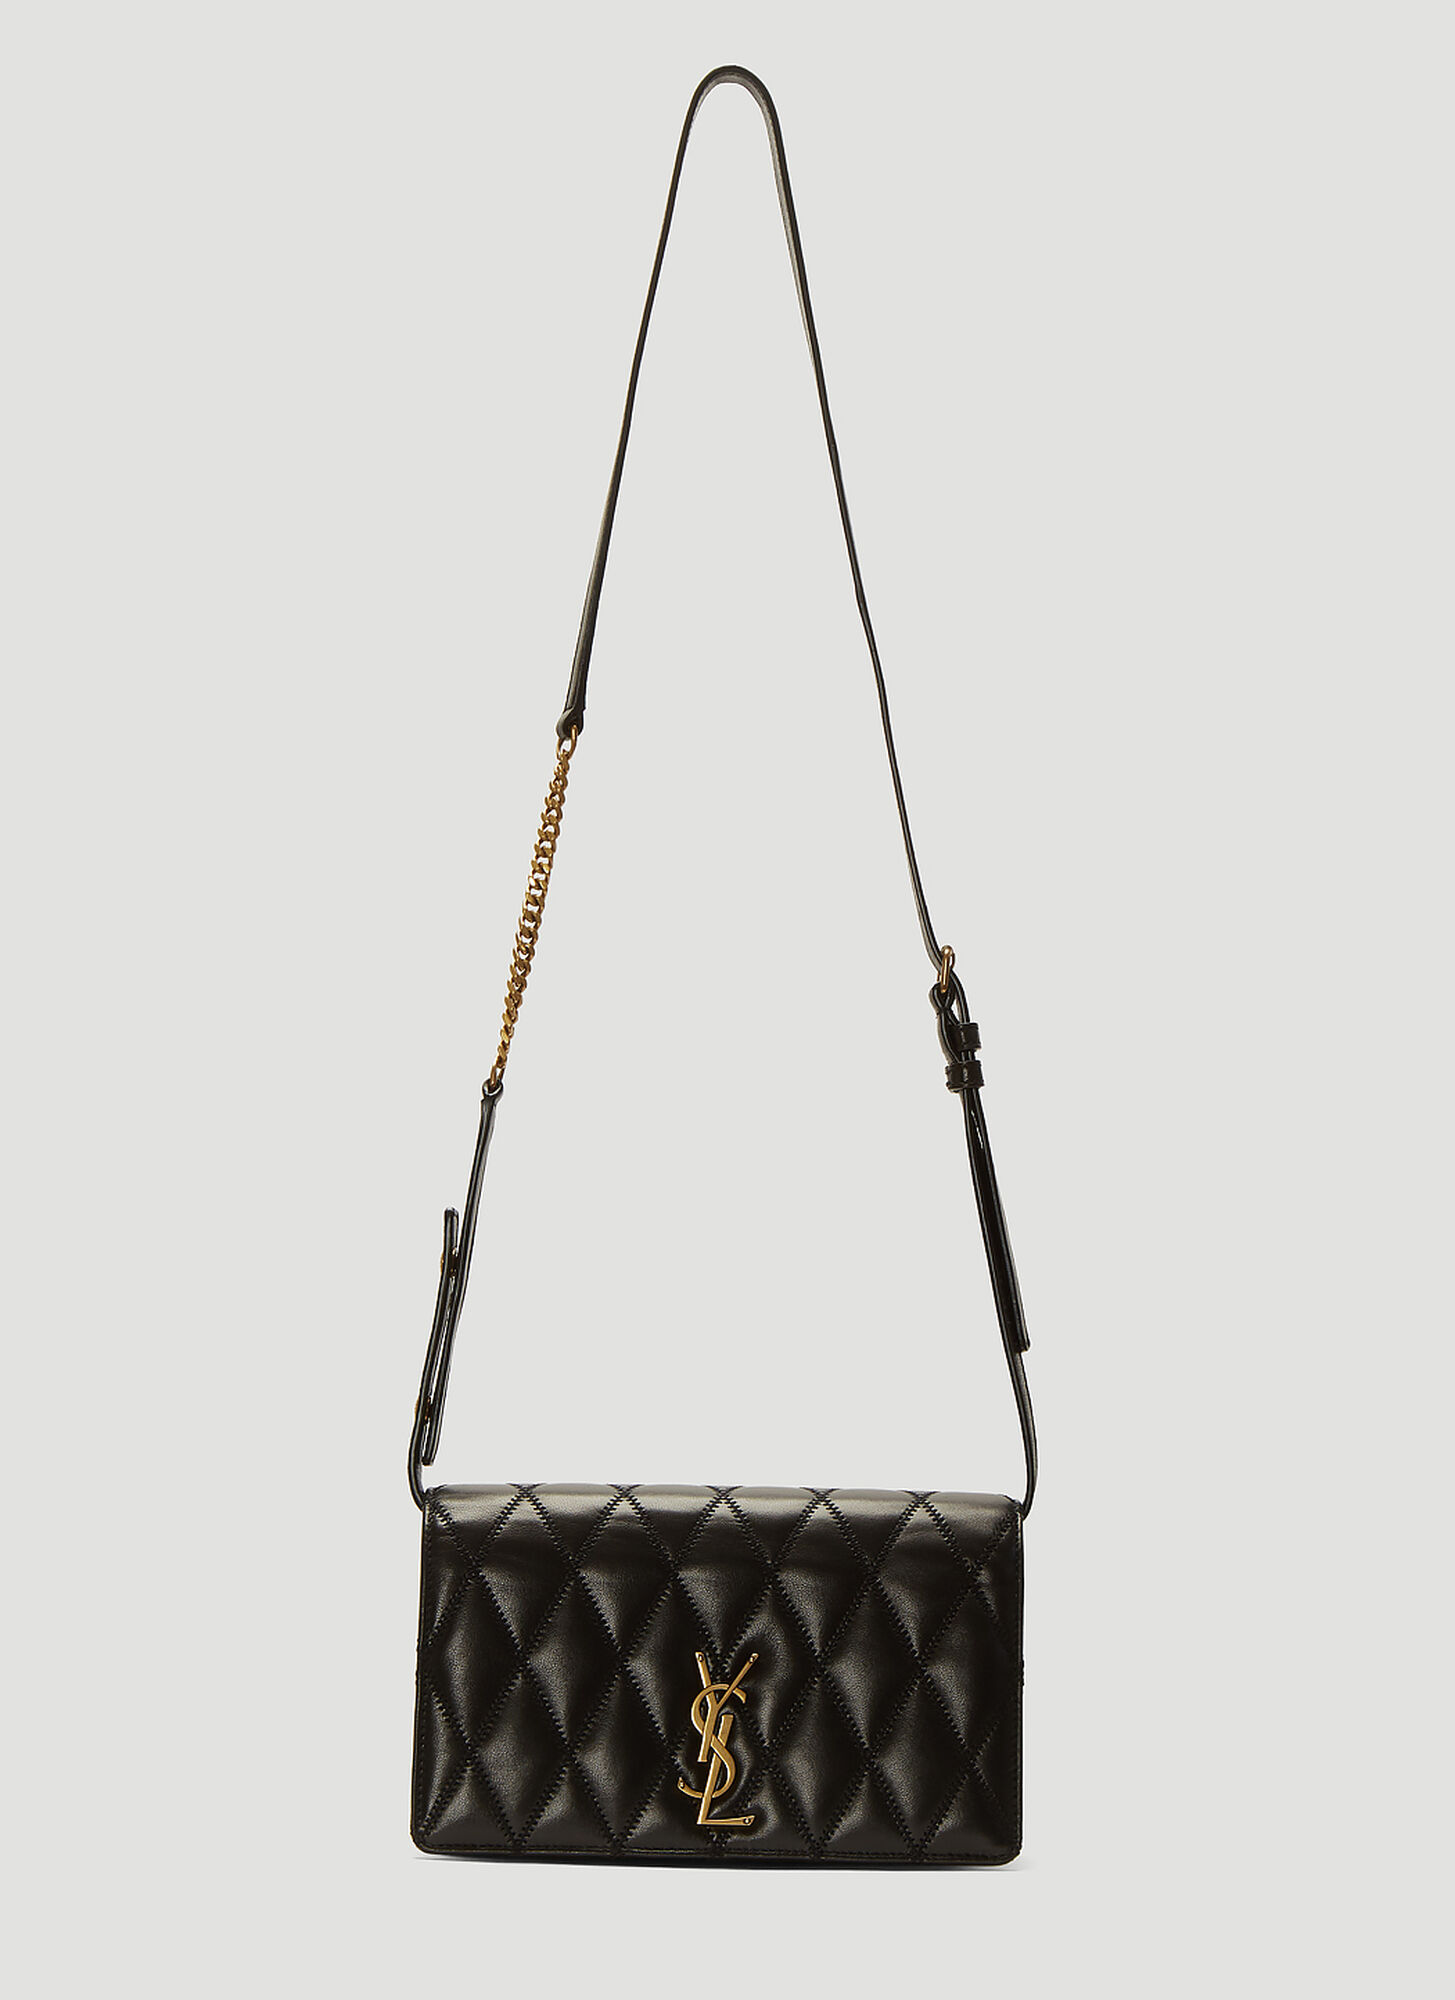 Saint Laurent Angie Leather Chain Bag in Black